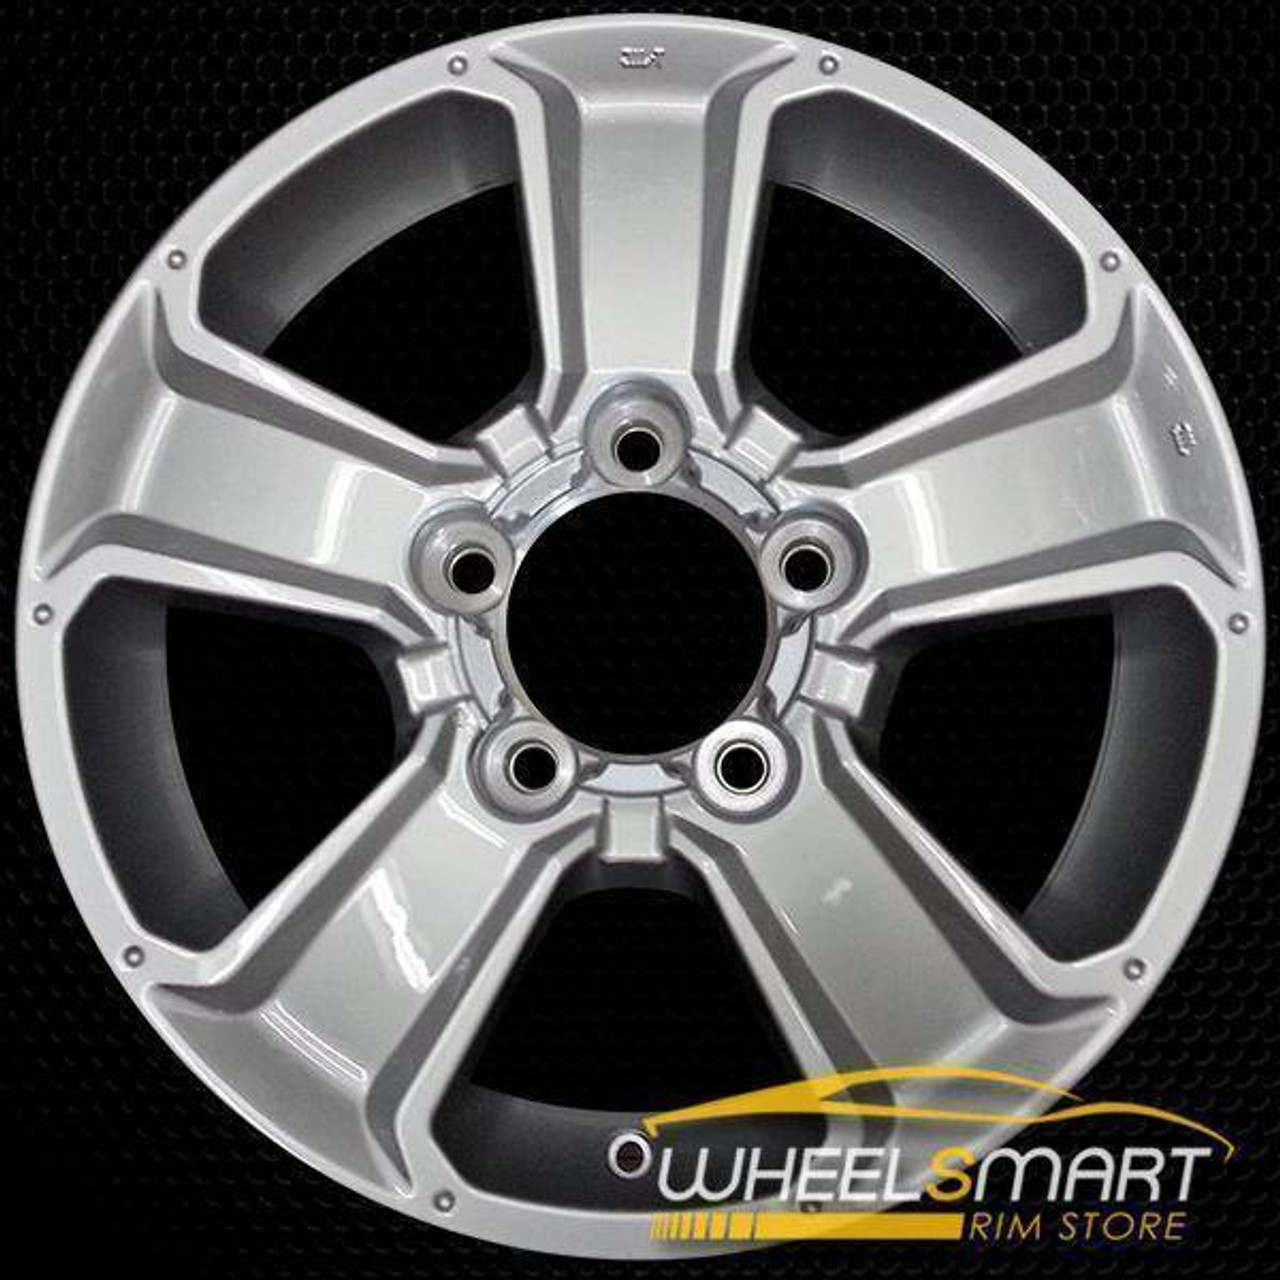 Rim Fits Toyota Sequoia Replacement Toyota Tundra 2007-2017 18 inch Silver Steel Wheel